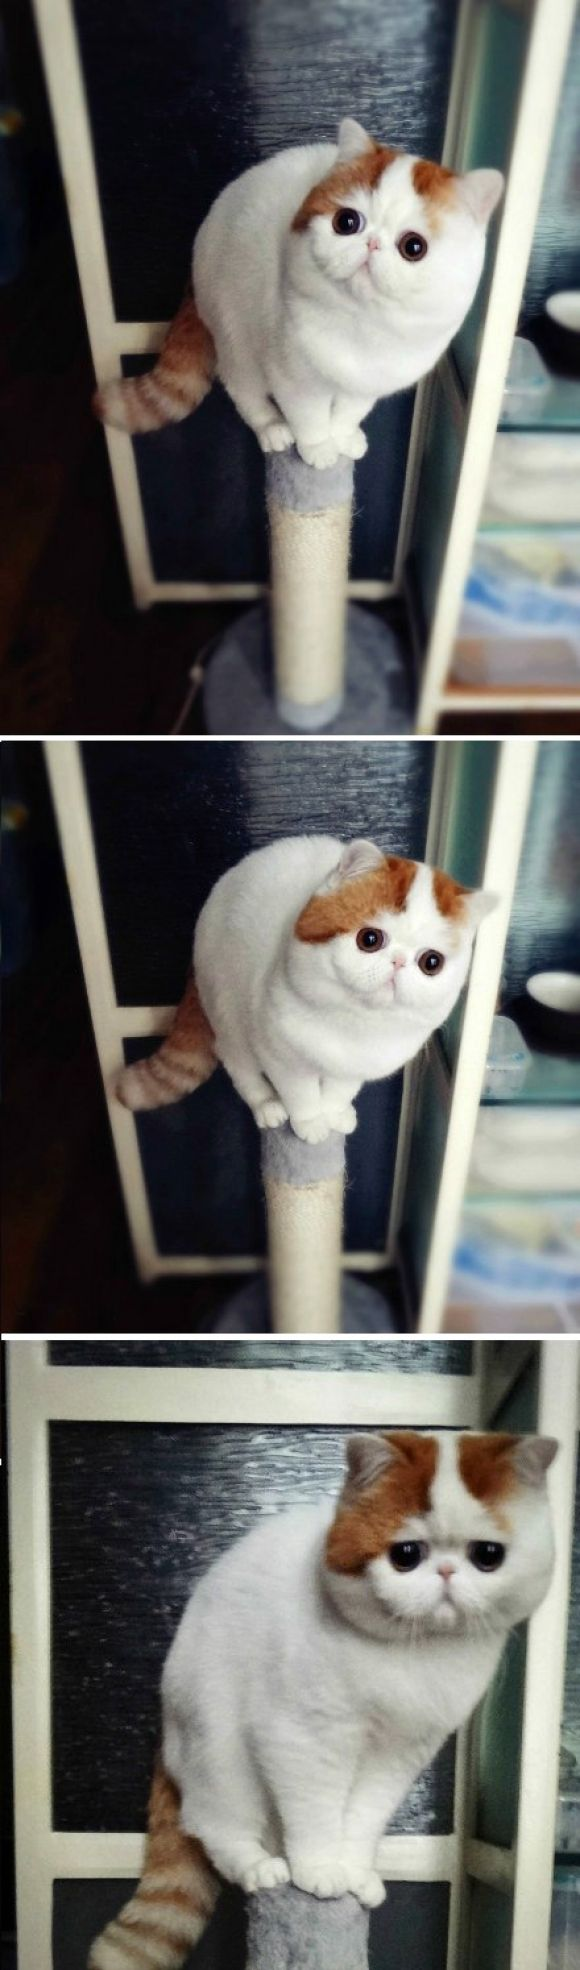 The Balancing Act: Cats, Animals, Pet, Cutest Cat, Exotic Shorthair, Kitty, Eye